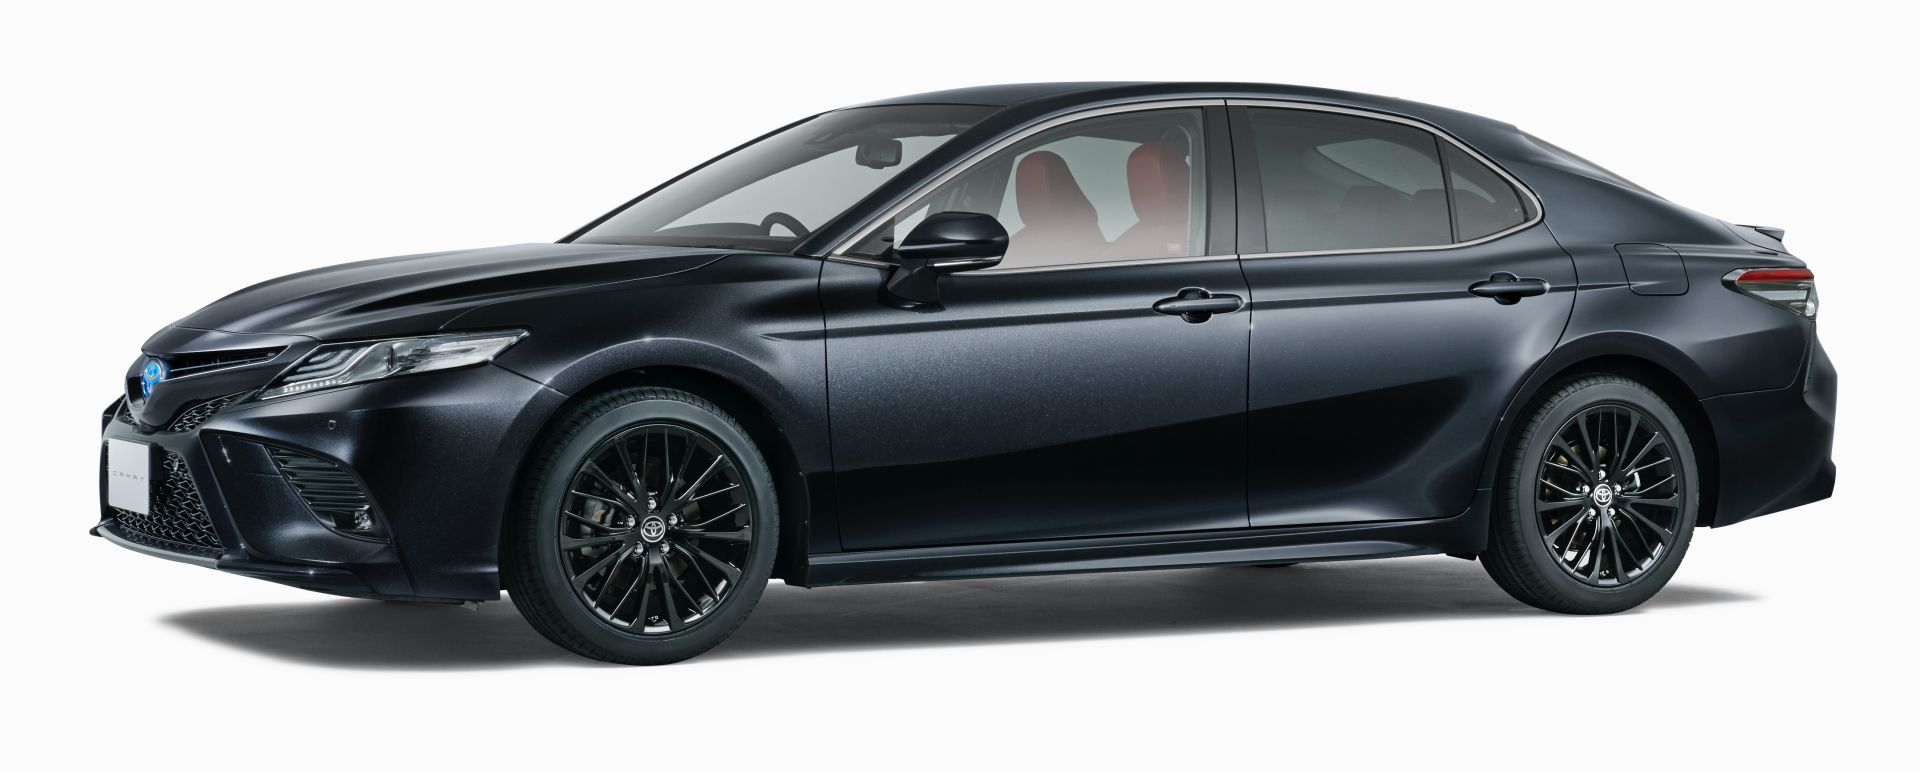 Toyota_Camry_Black_Edition_0001